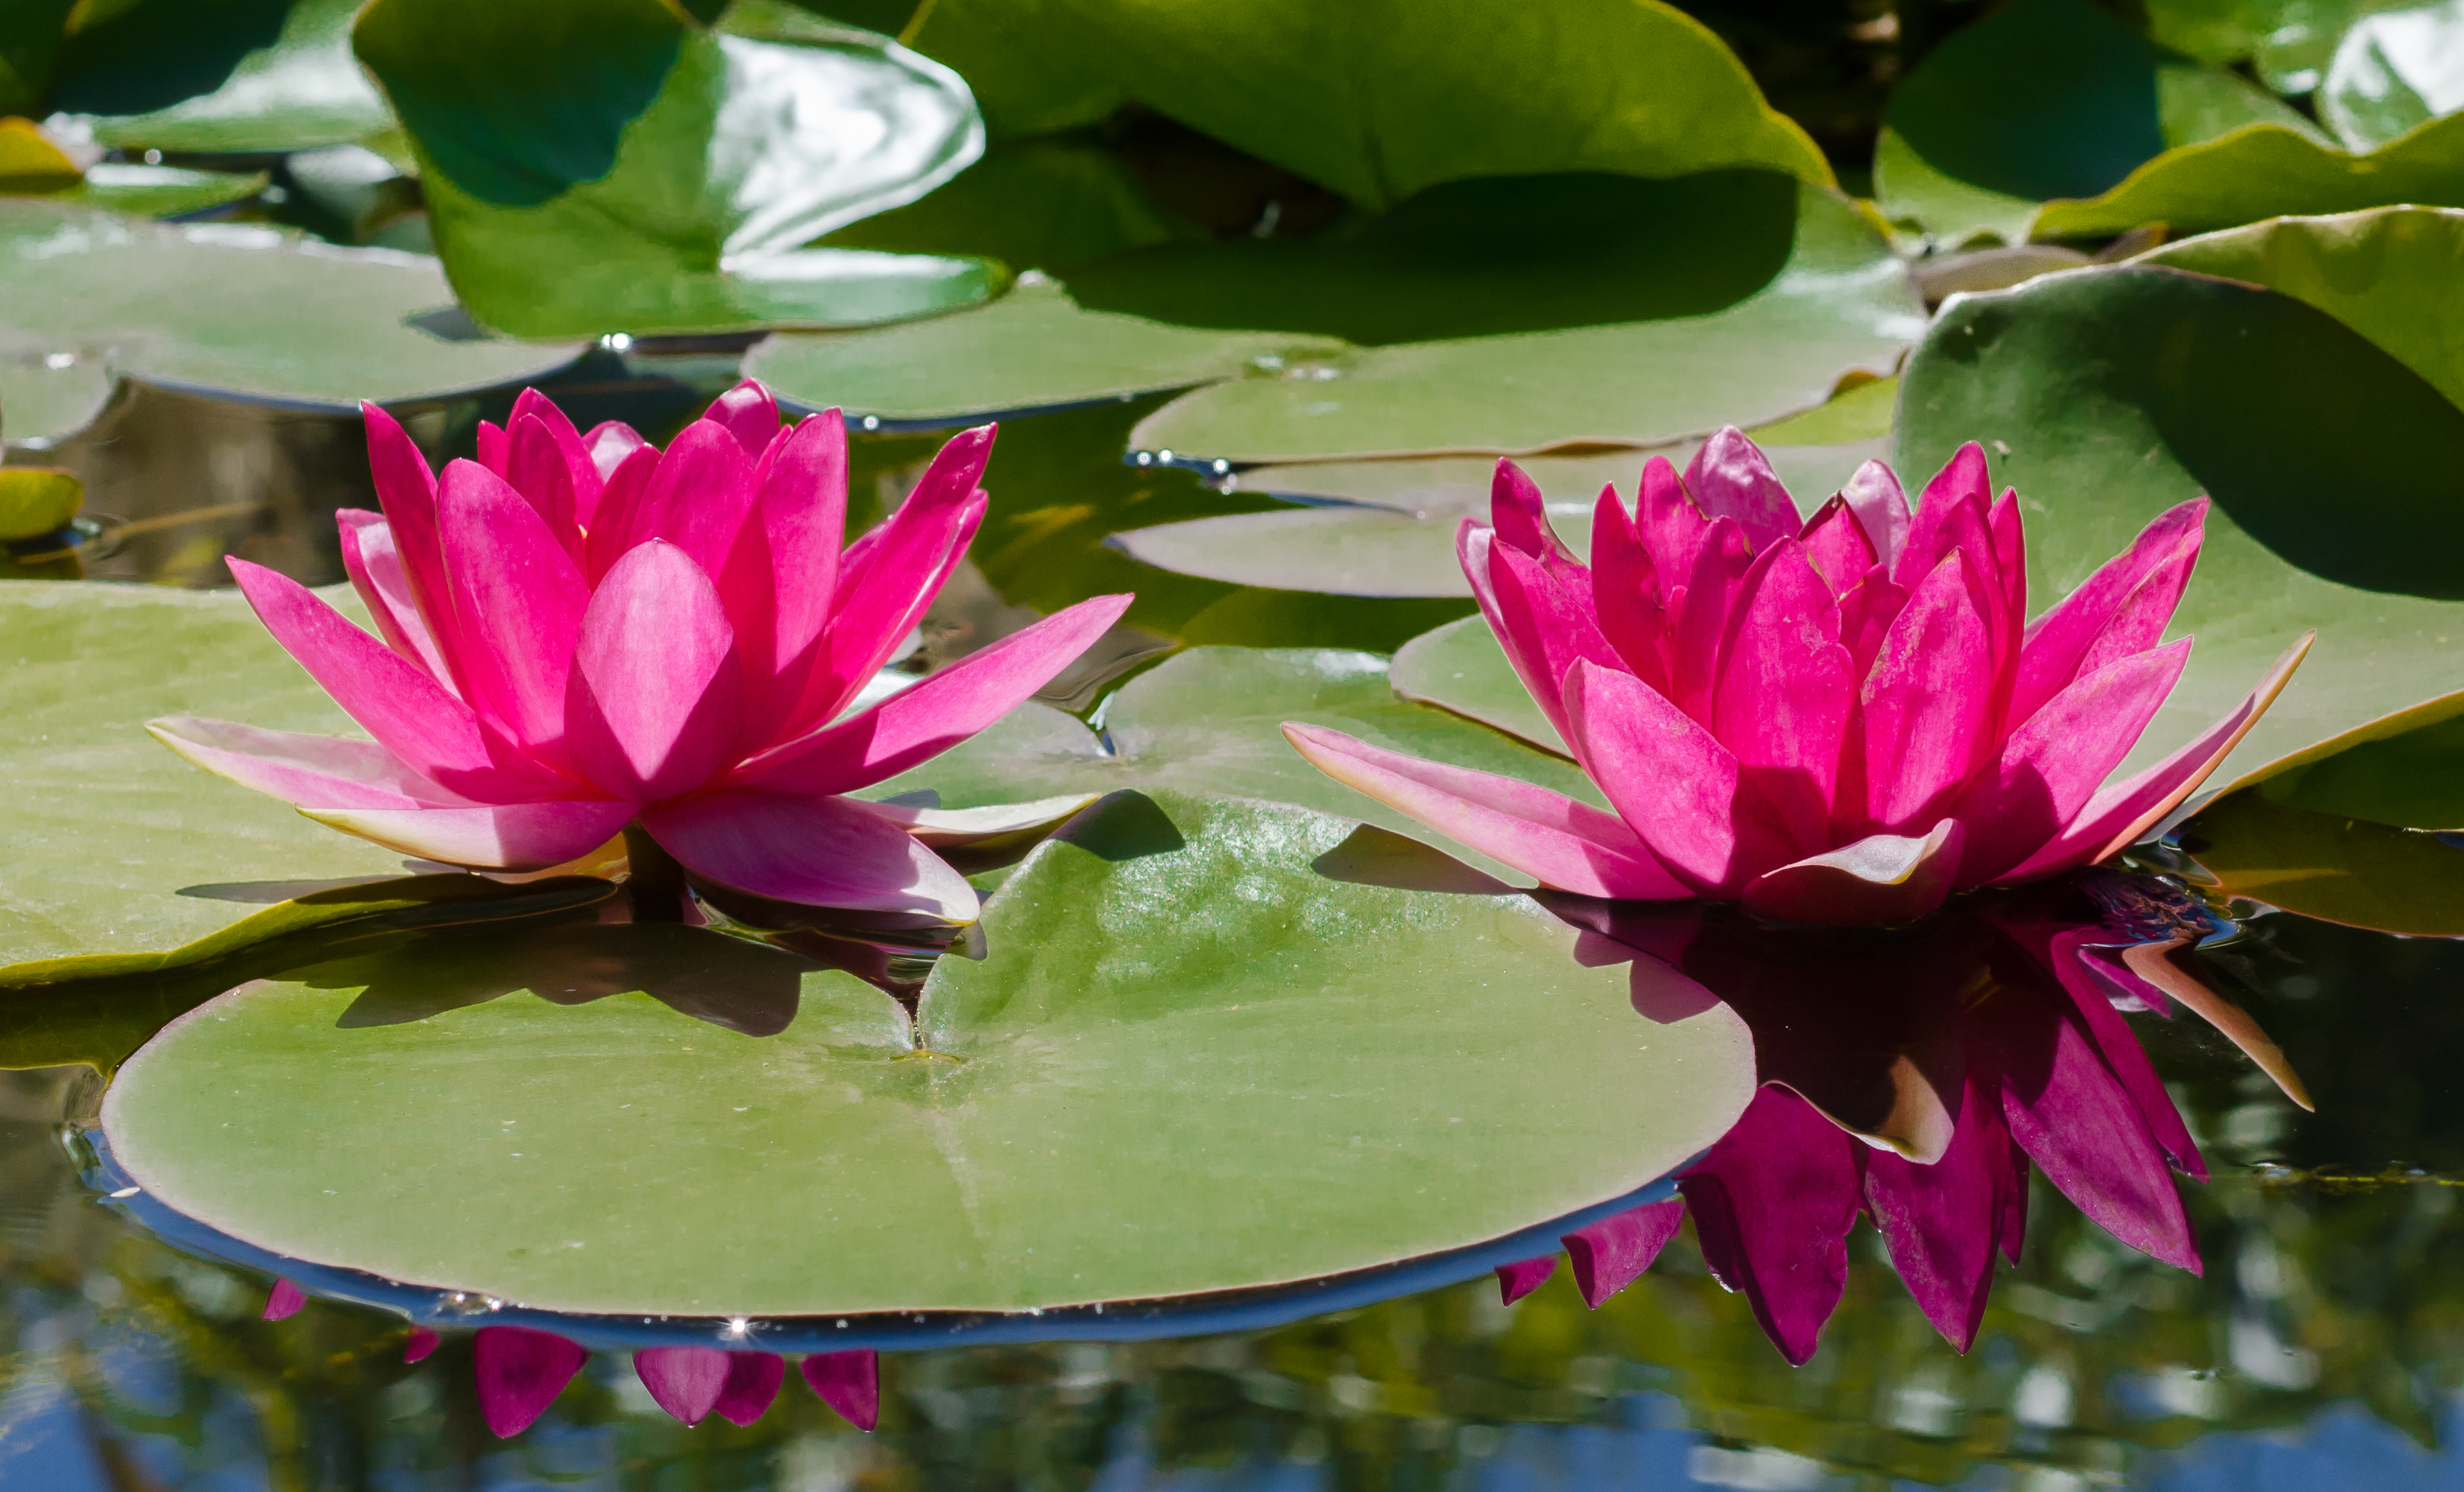 Free stock photo of pond, water lily.